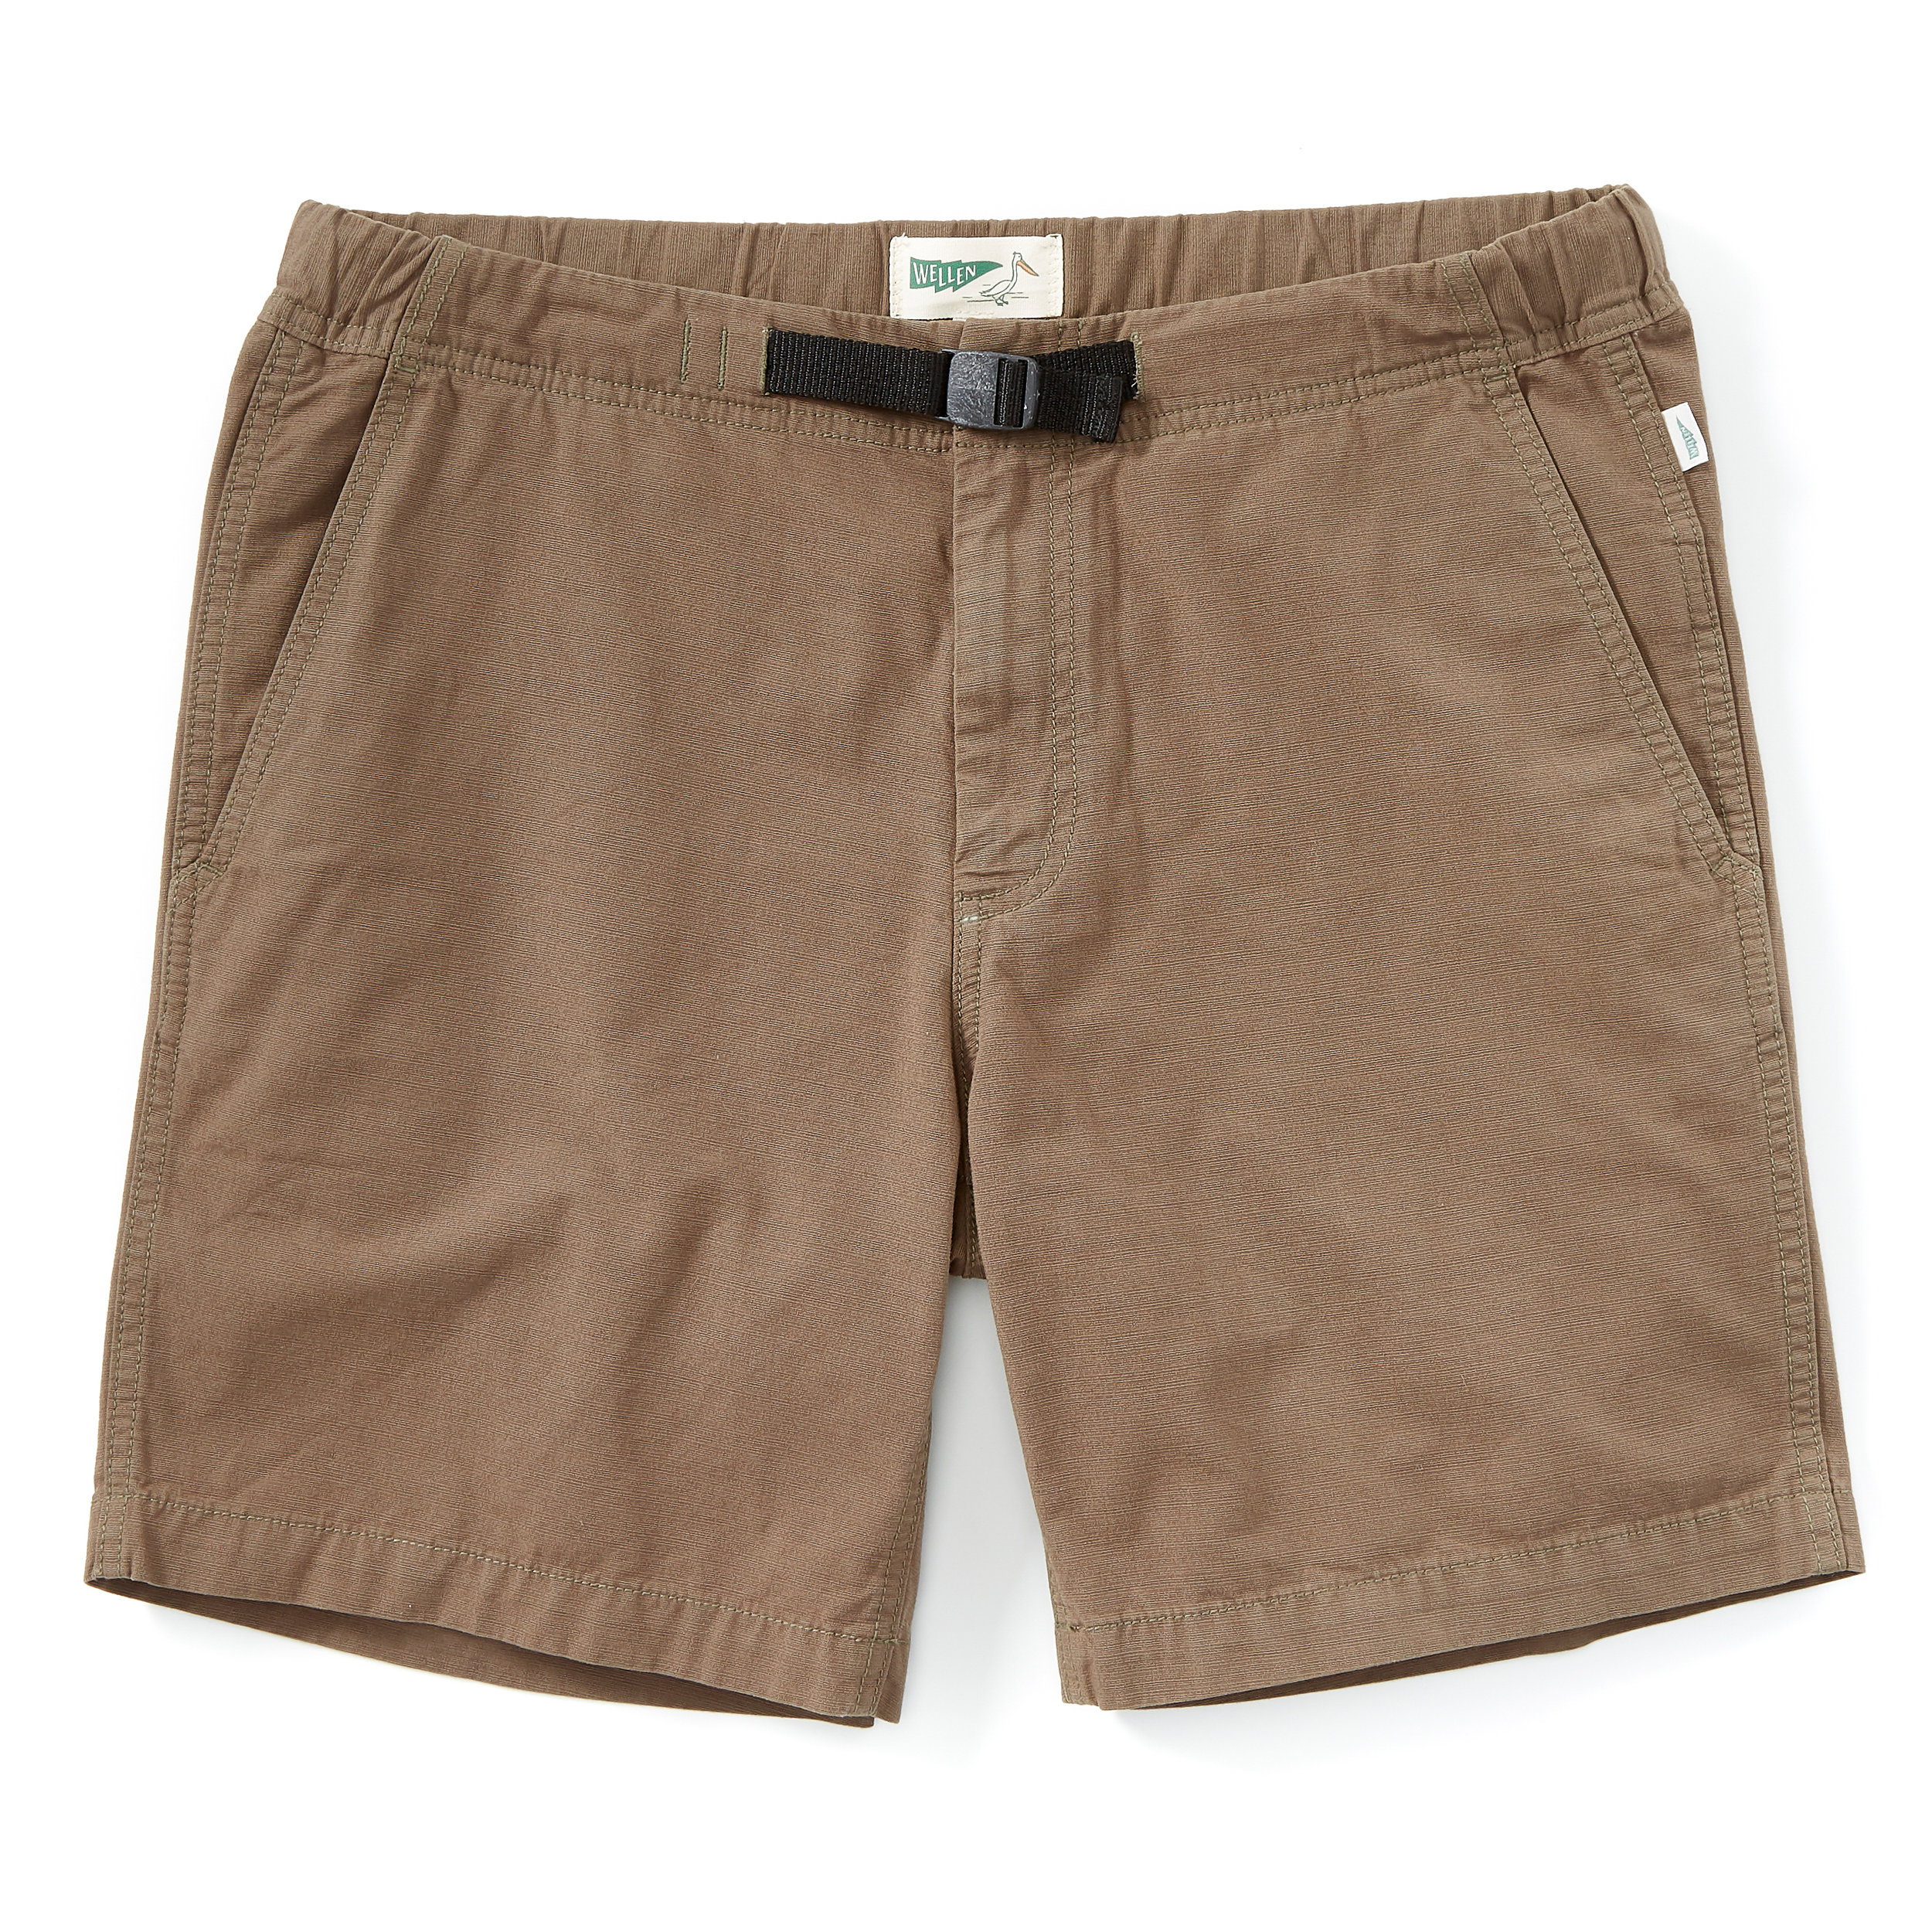 Wellen Cruiser Short - These shorts rule. An elastic waistband, built-in cinch belt, and zippered back pocket. Everything you need and nothing you don't.